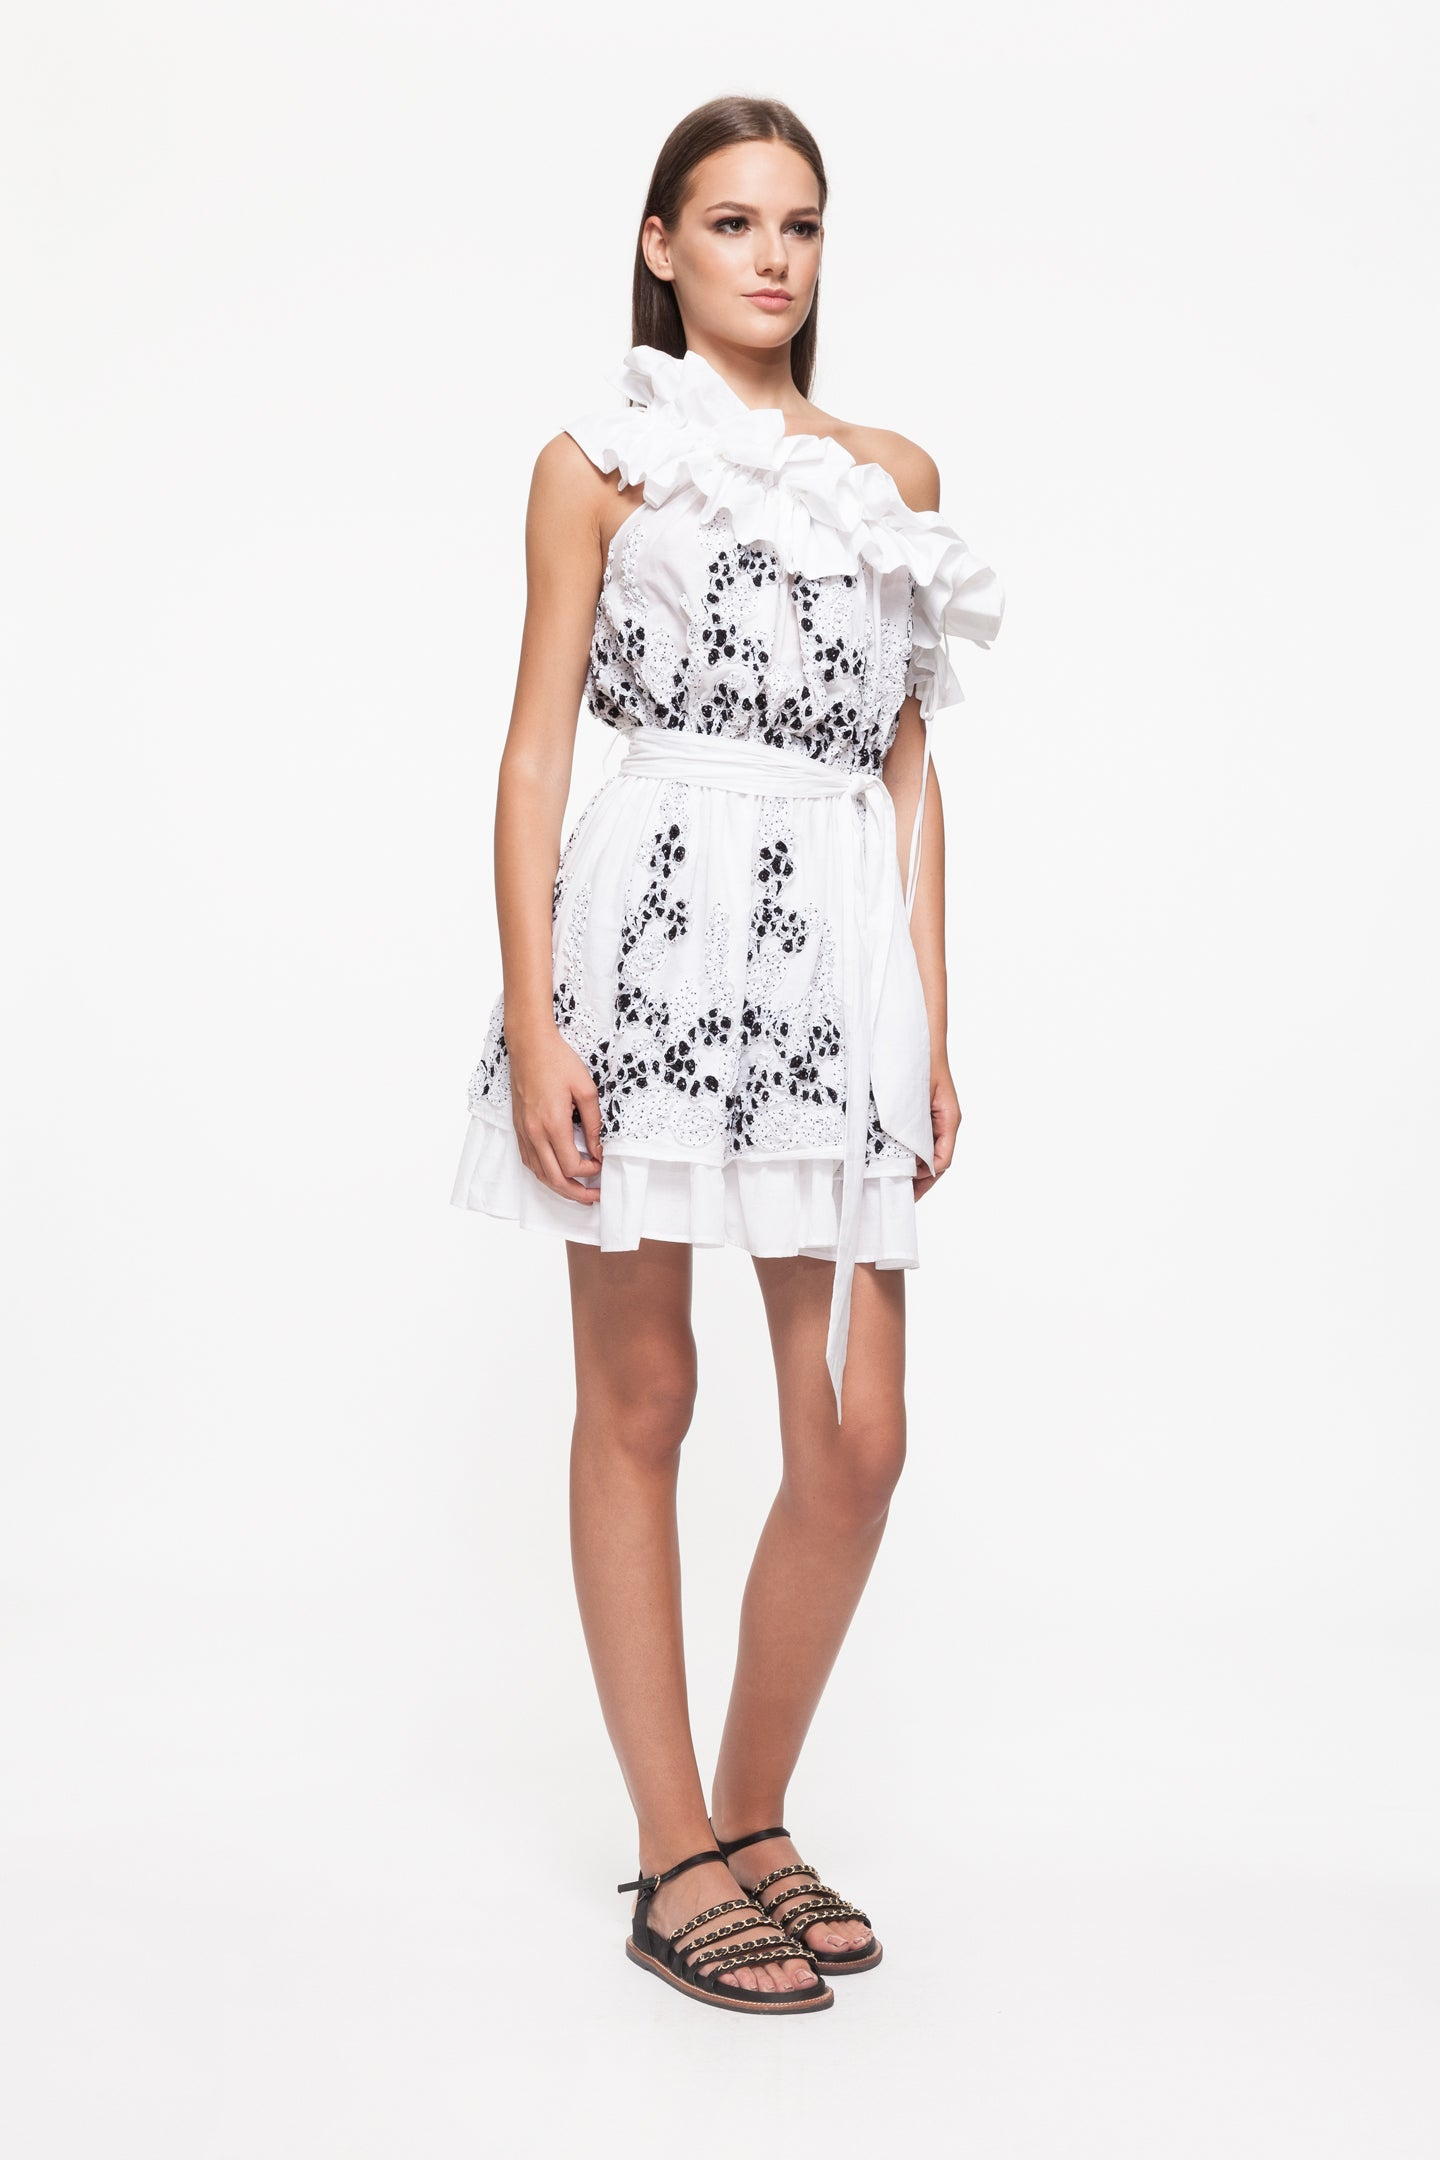 EMALY White Cotton Dress